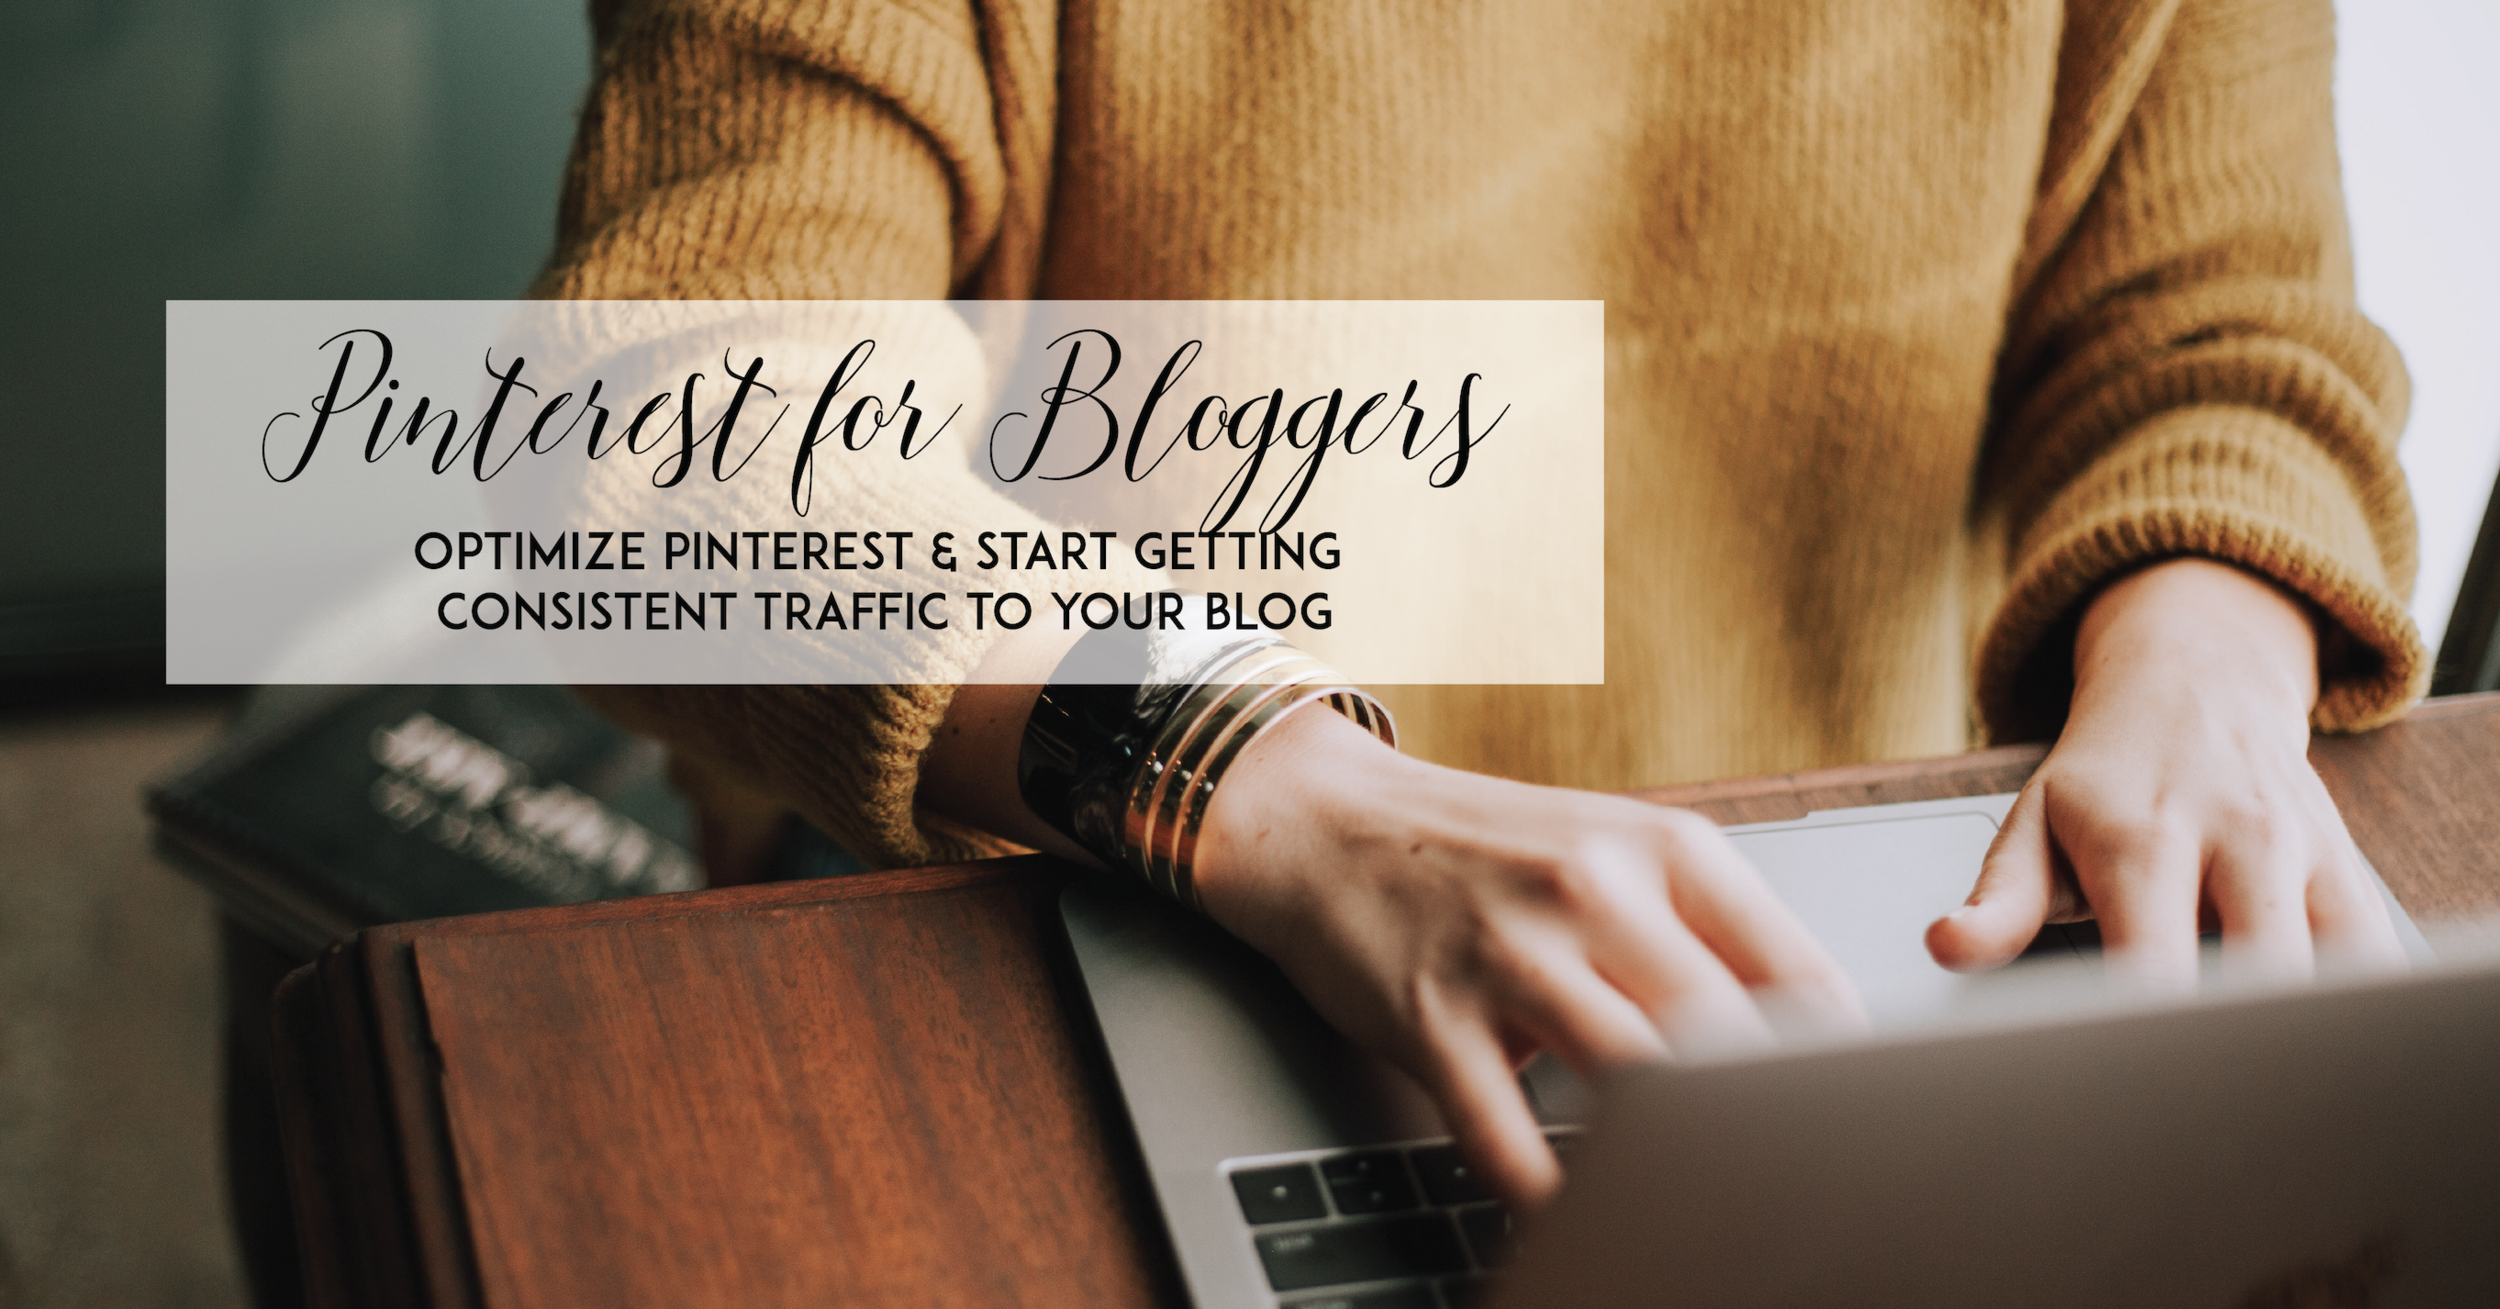 5-Pinterest-Profile-Changes-That-Will-Make-A-Big-Difference-Pinterest-for-Bloggers.png